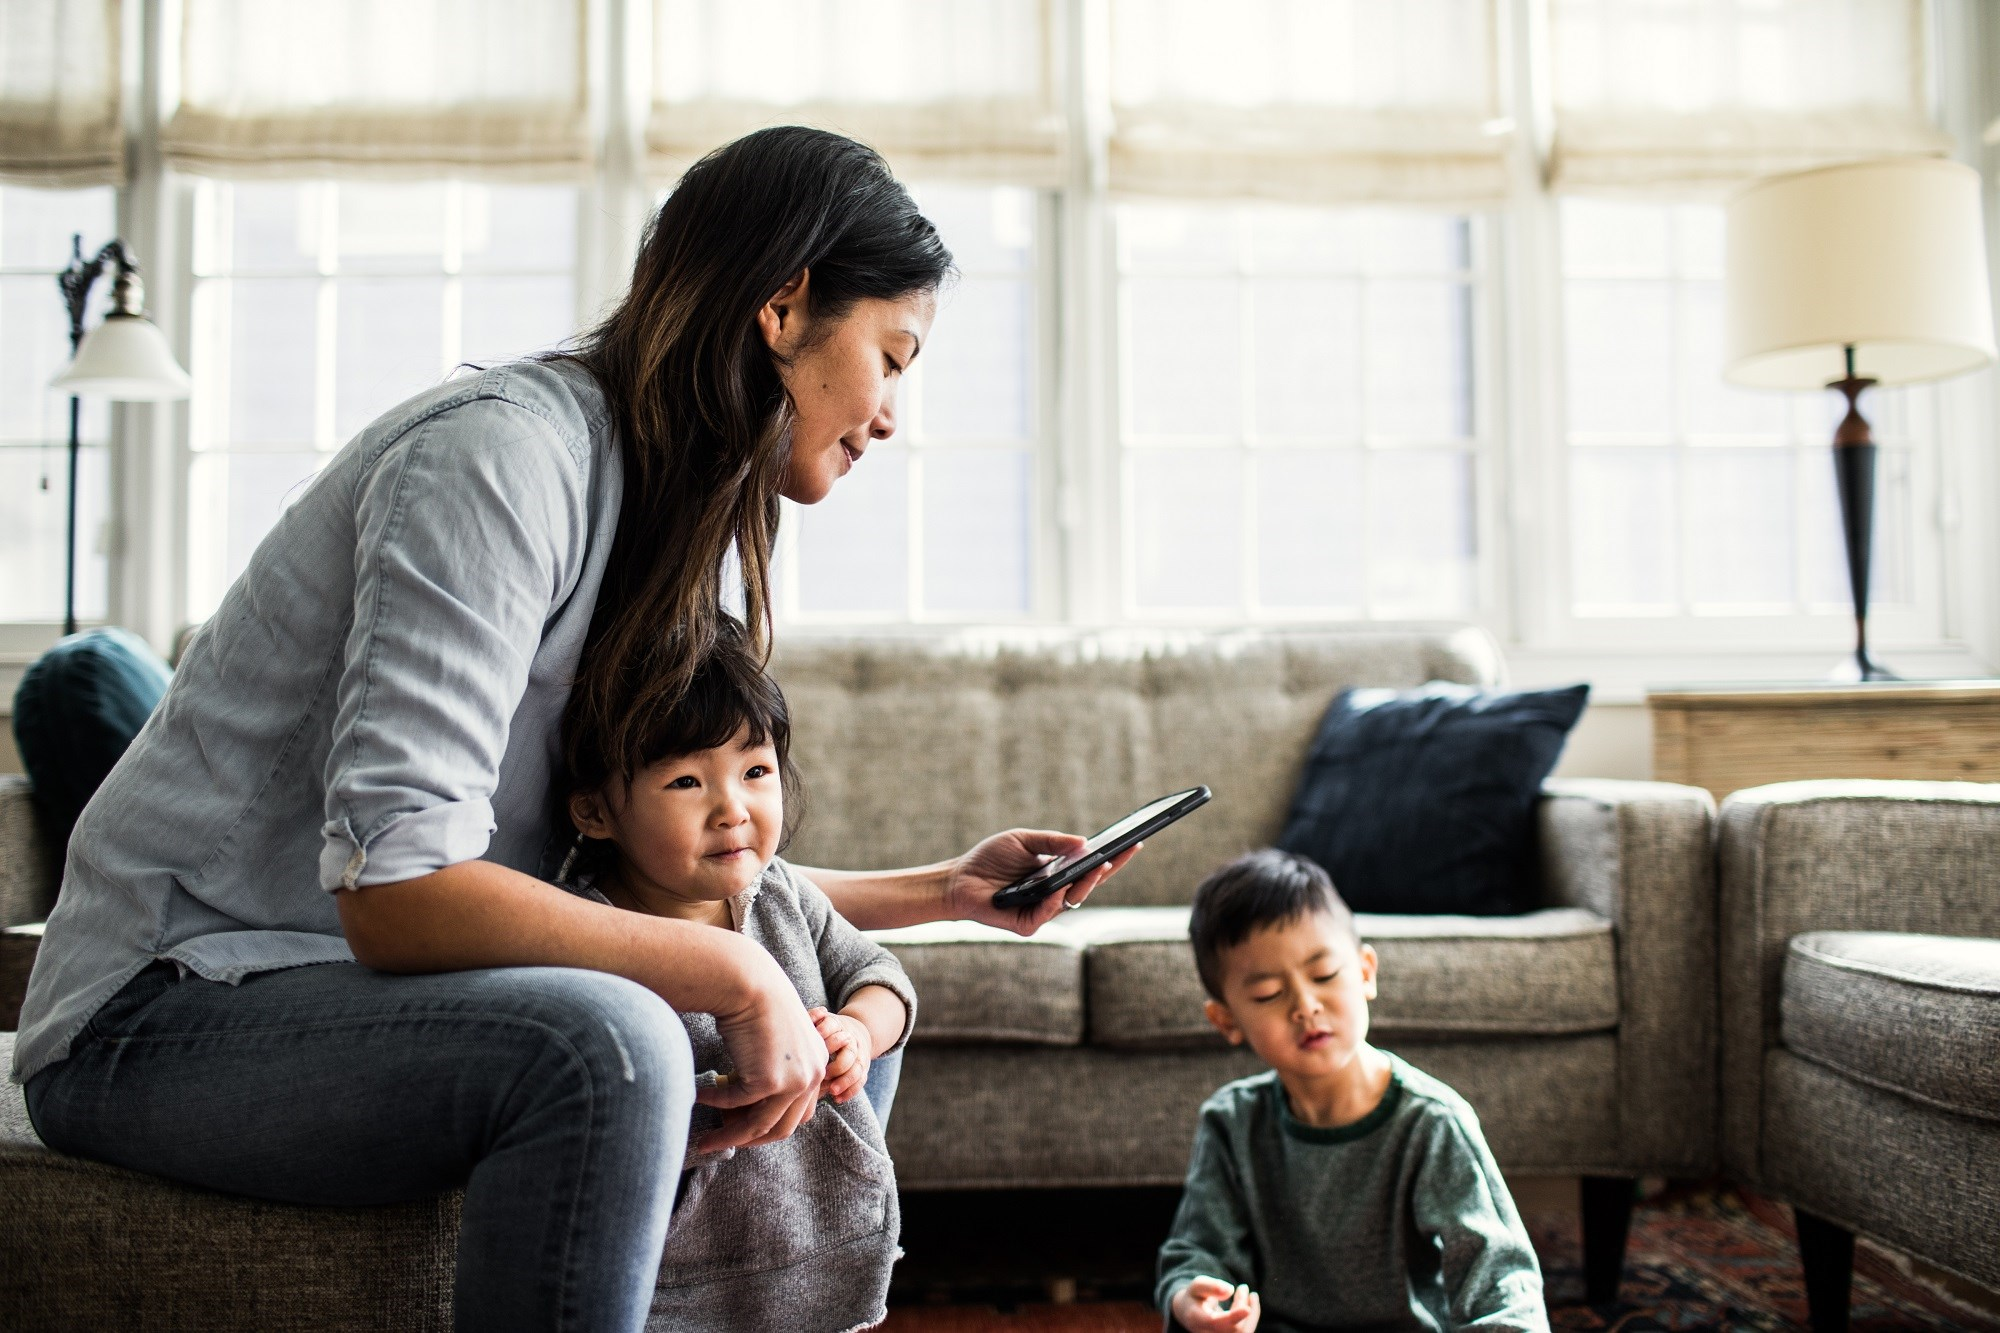 Parents' Technology Use Can Negatively Impact Children